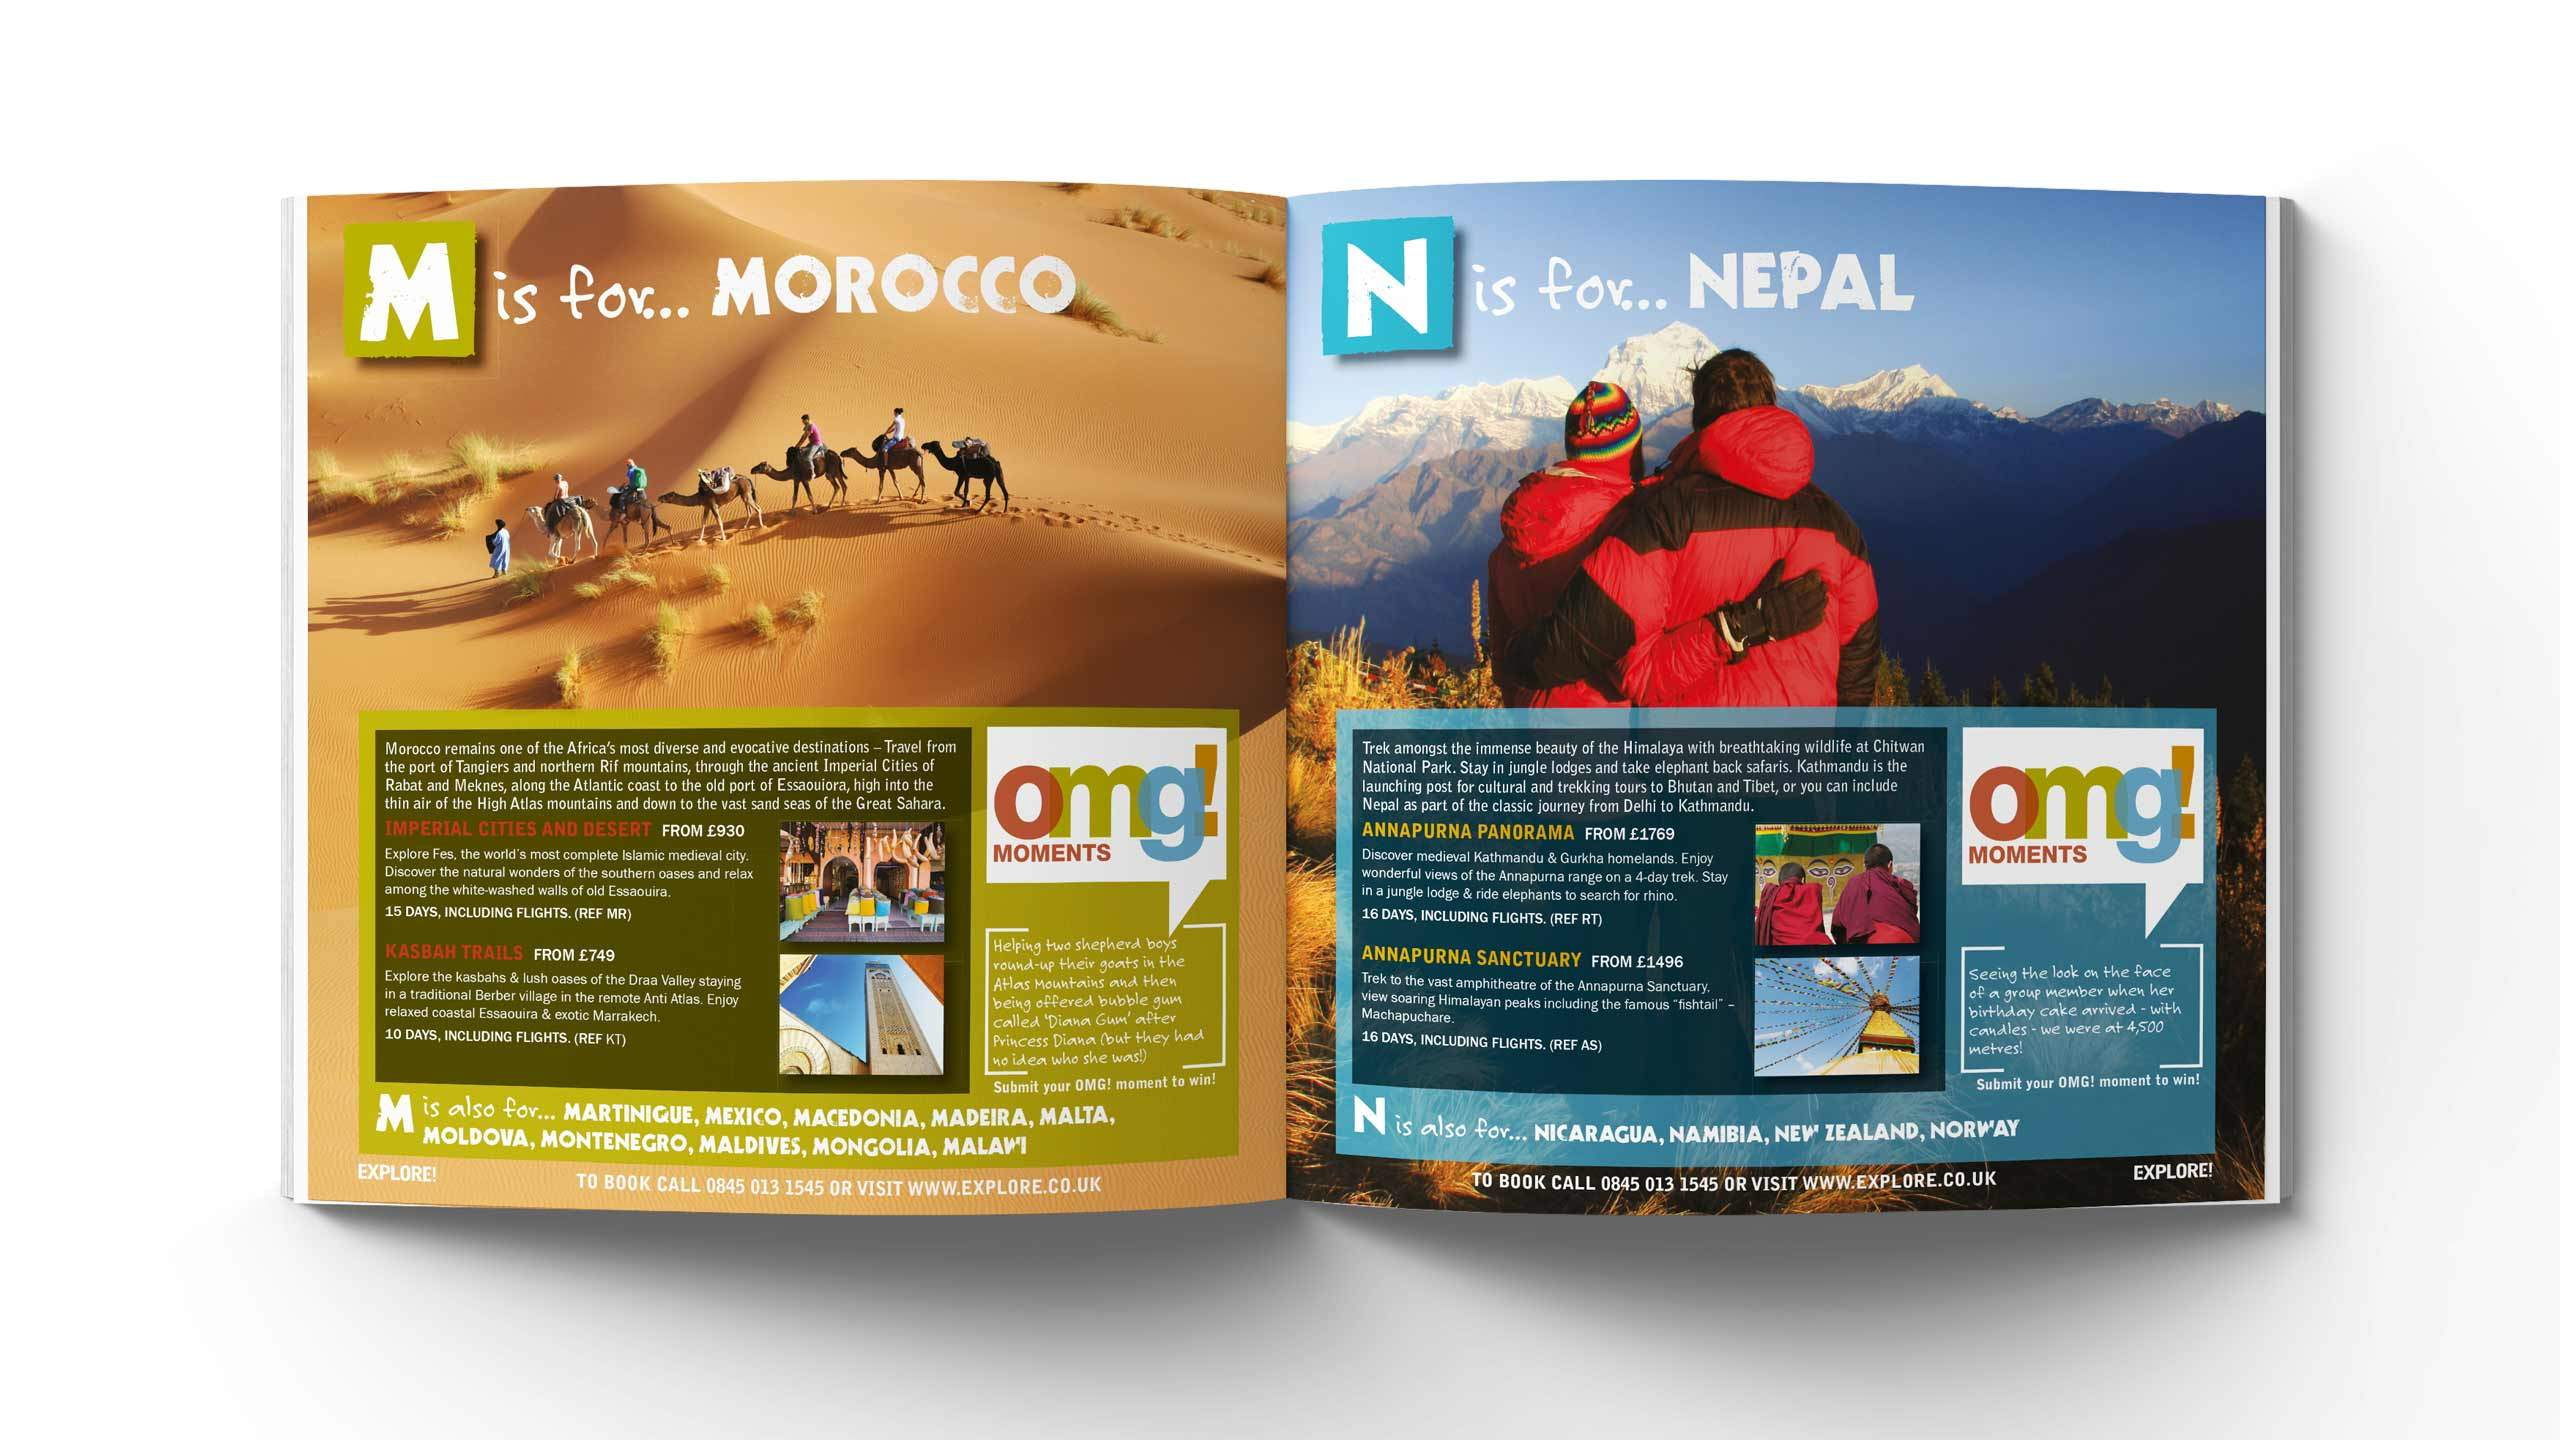 adventure travel brochure design morocco nepal pages omg marketing campaign